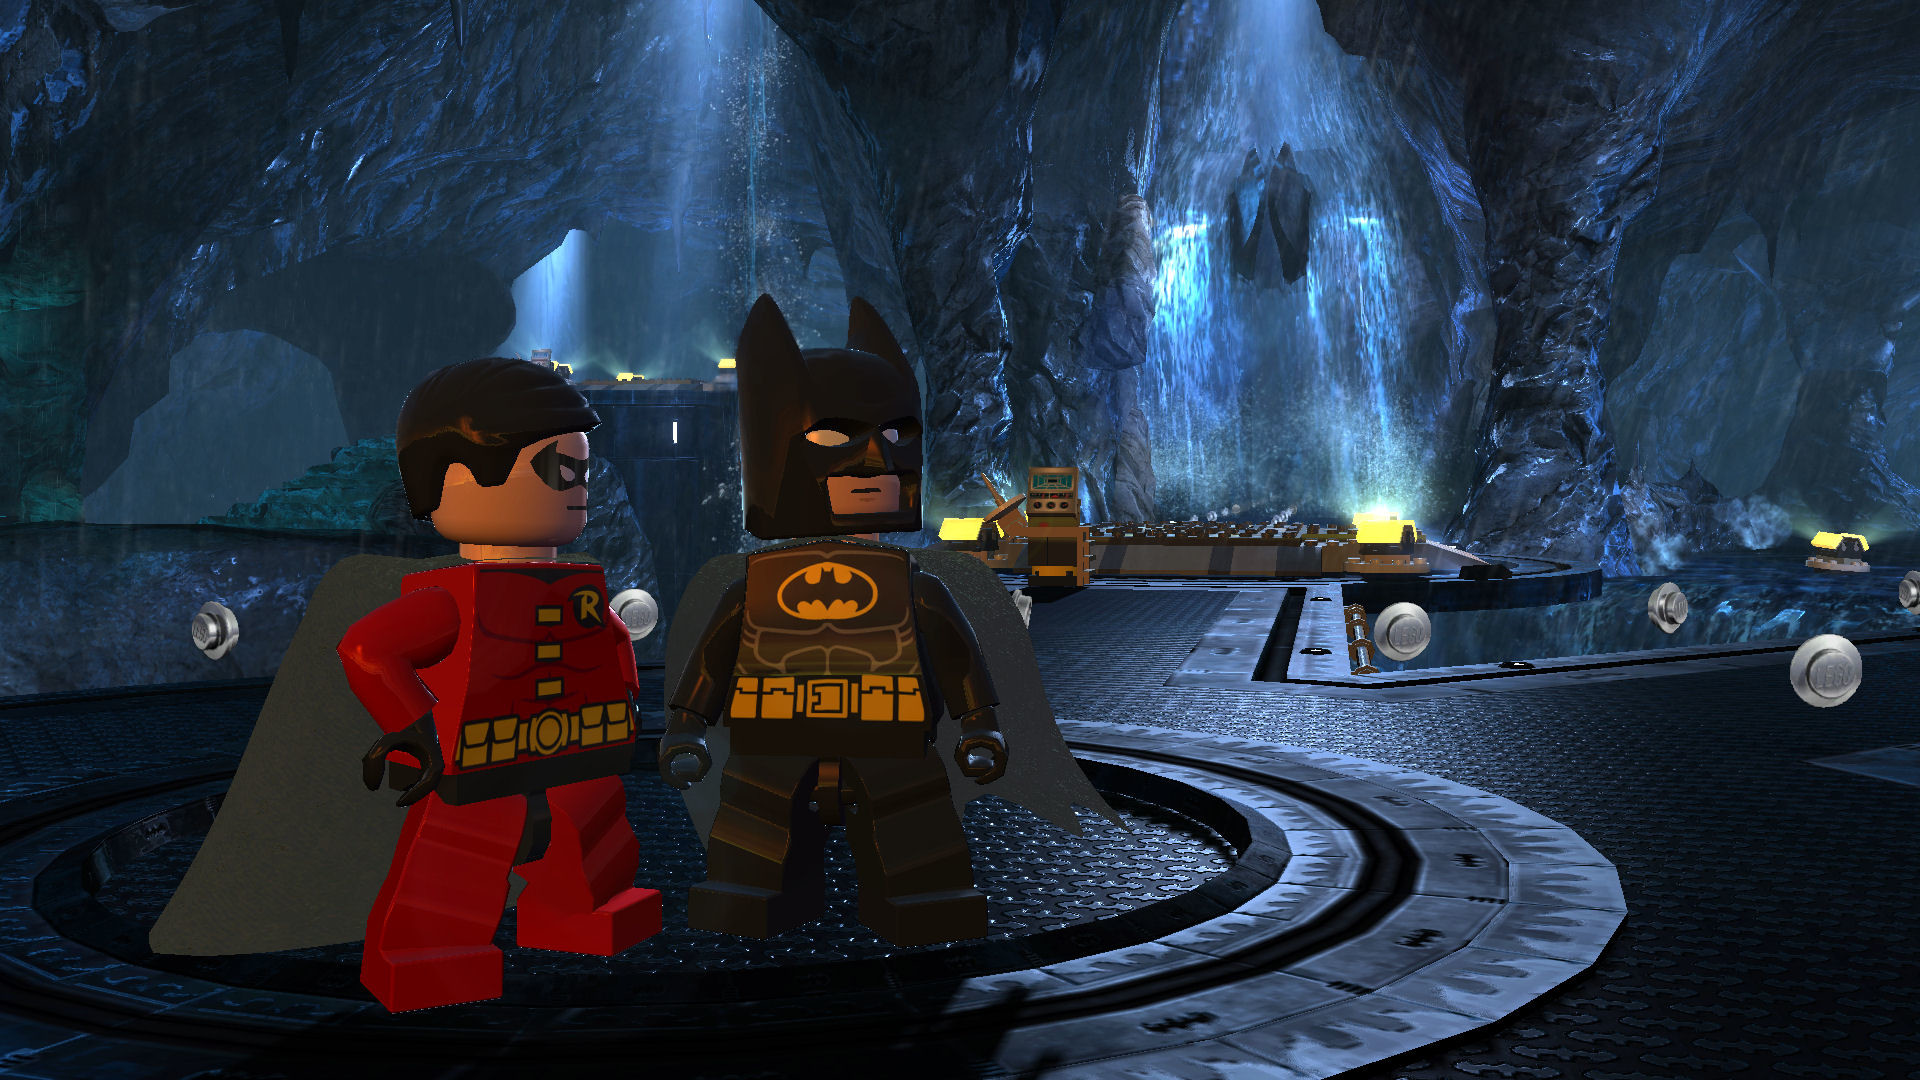 1920x1080 Lego Batman 2 Robin Wallpaper